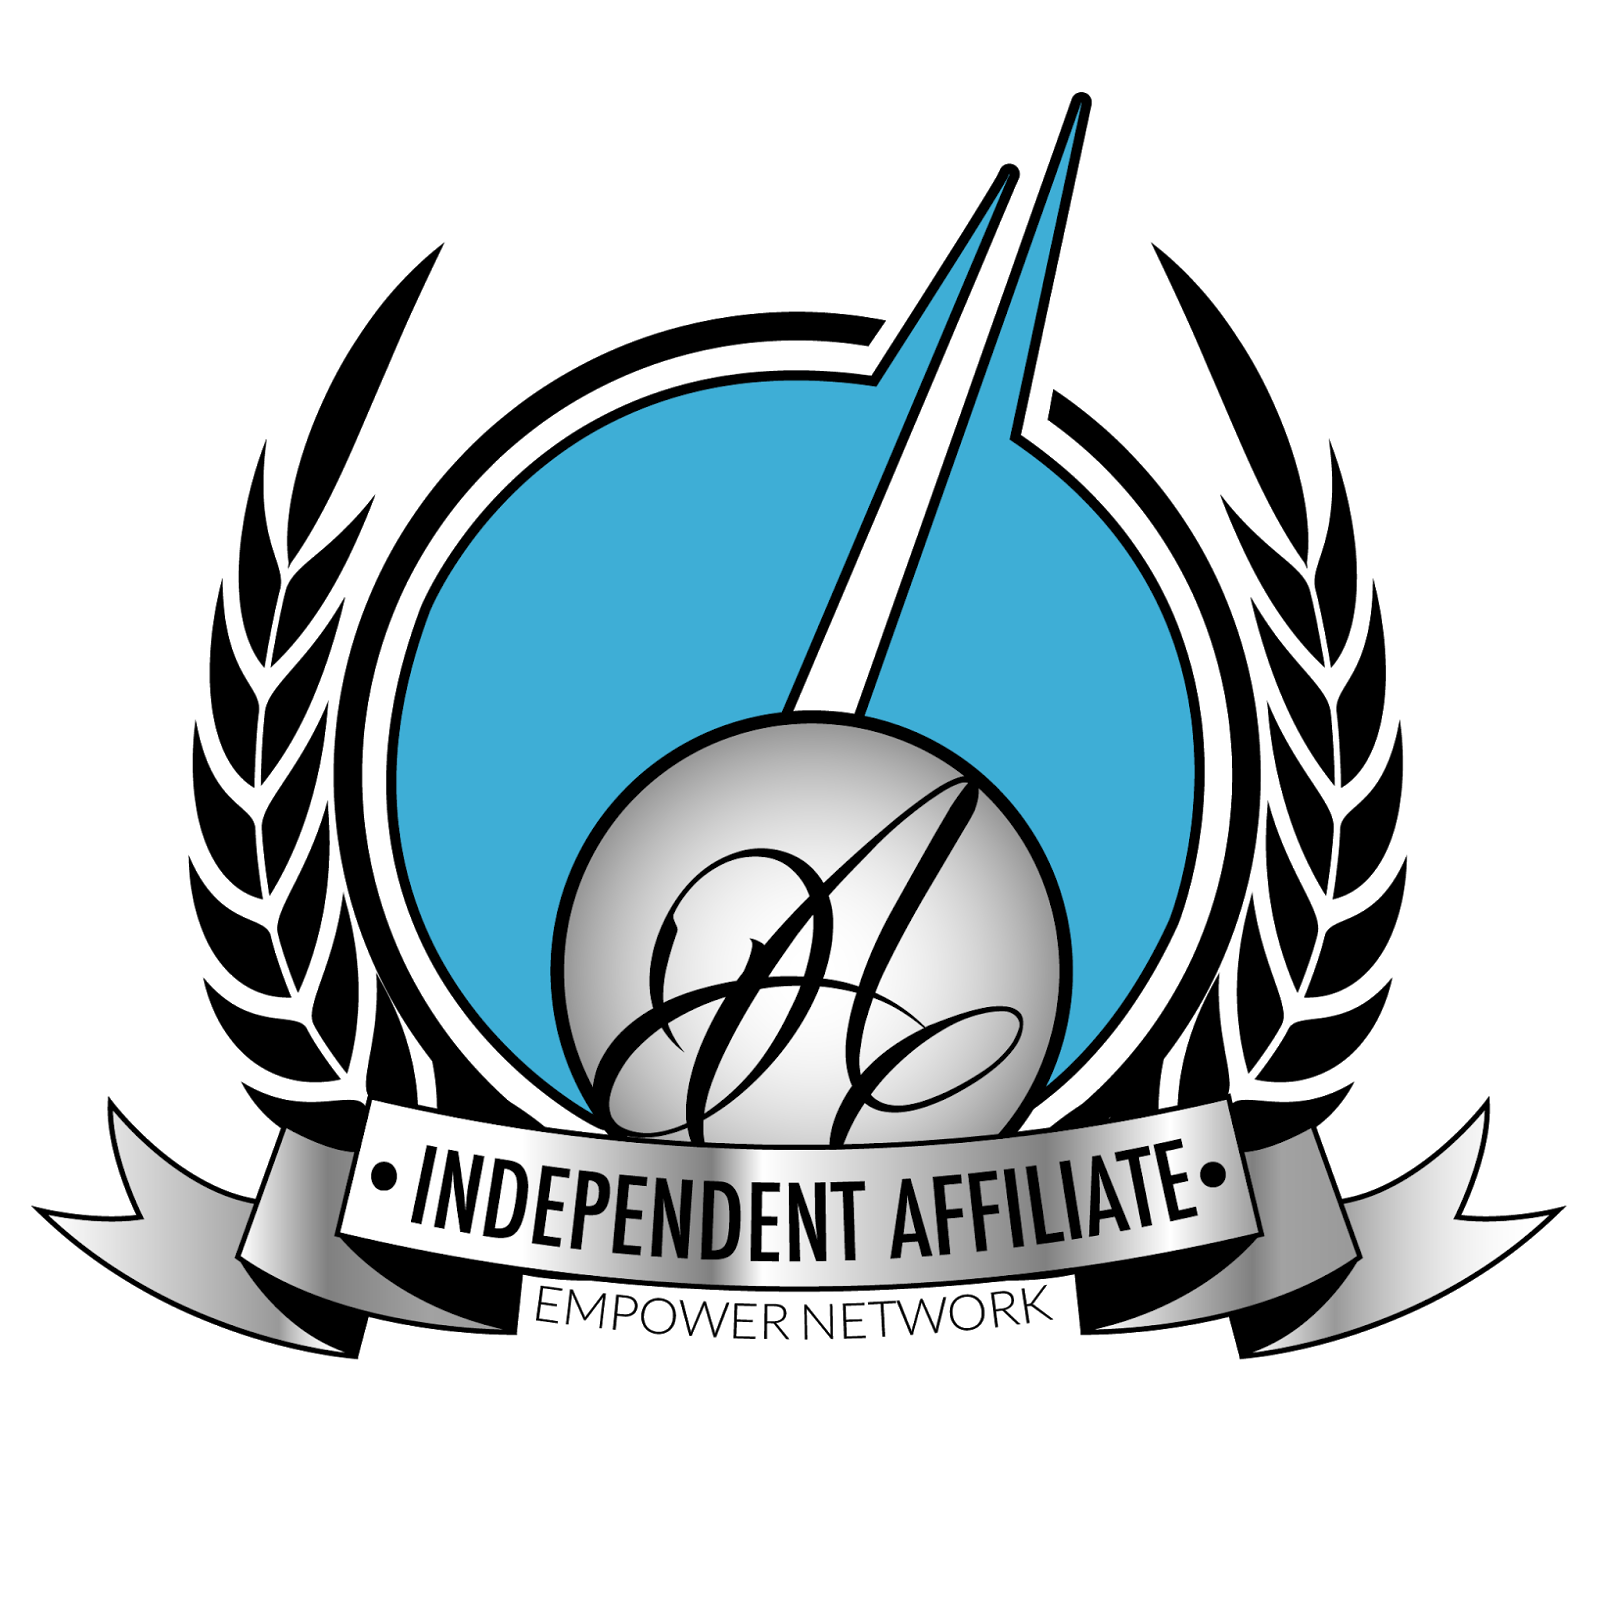 Afiliado Independiente Empower Network registro activacion